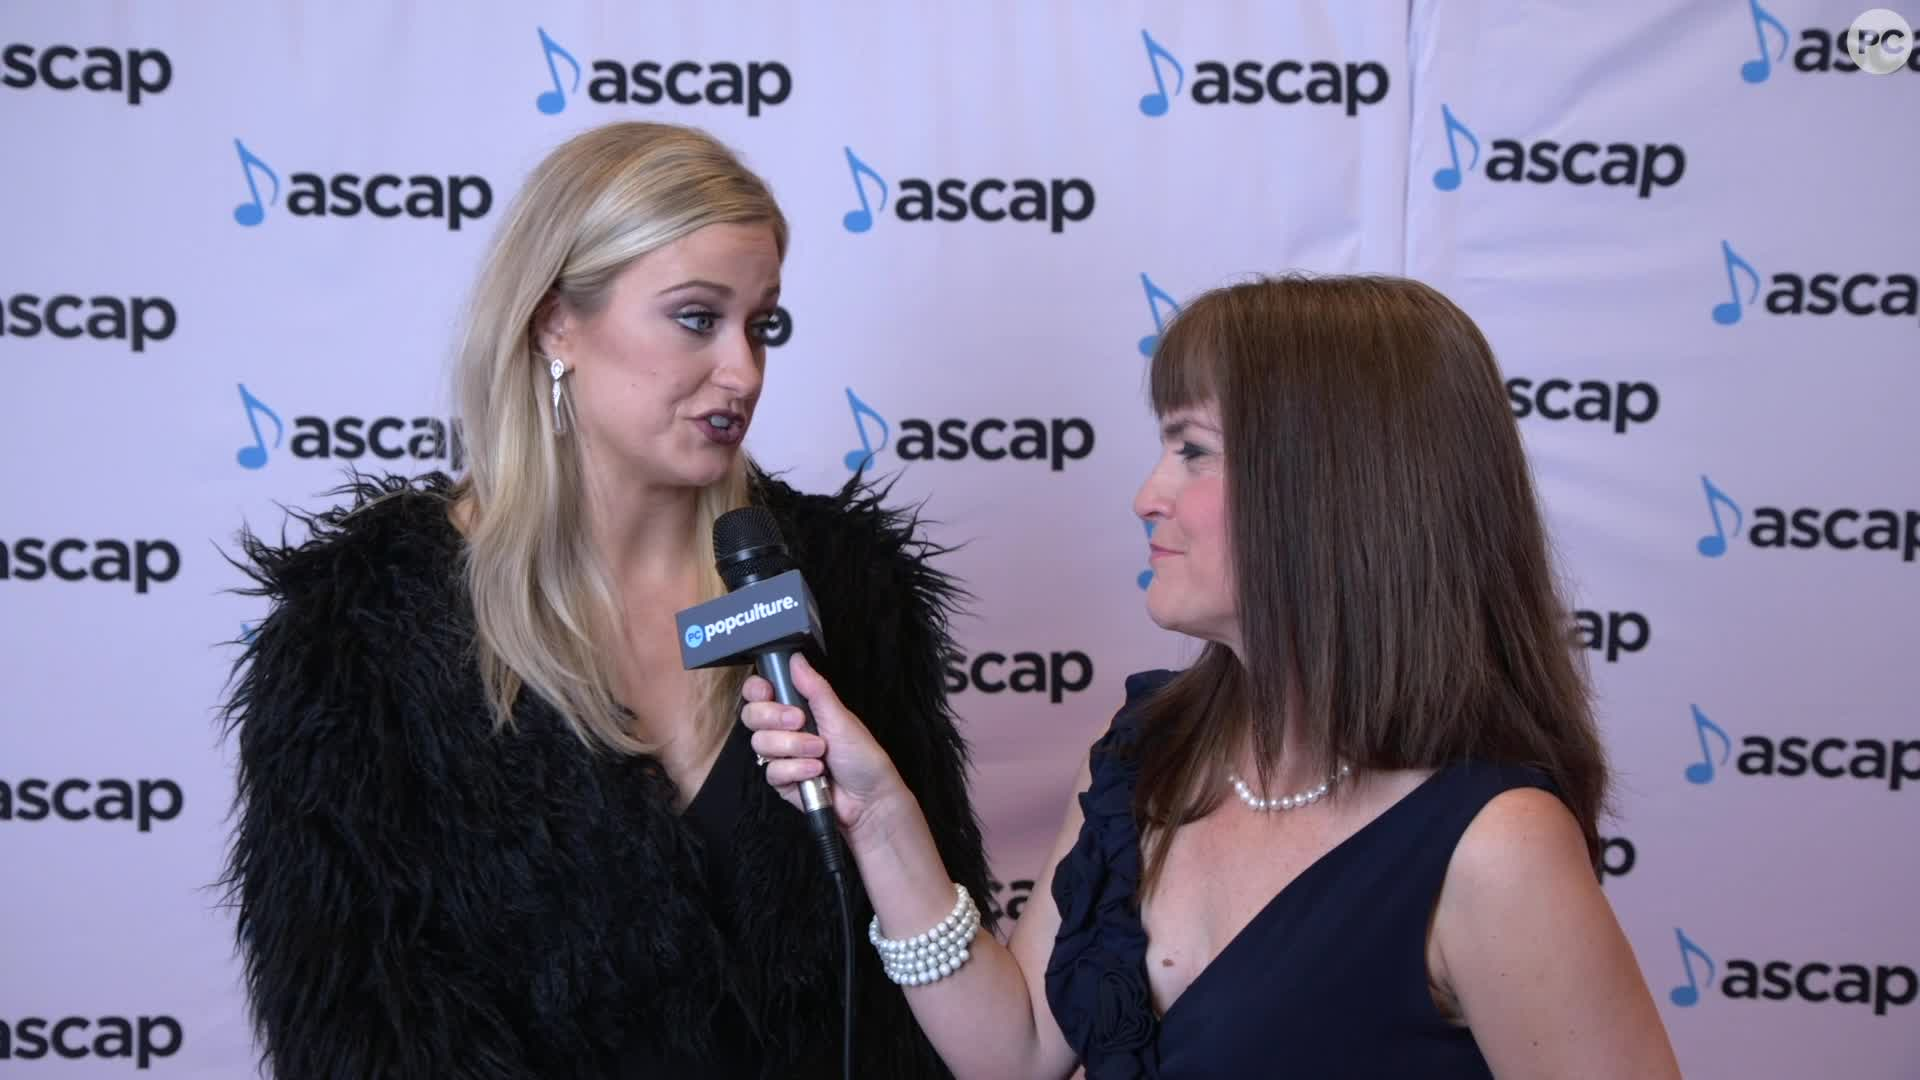 Rachel Wammack - 2019 ASCAP Awards screen capture